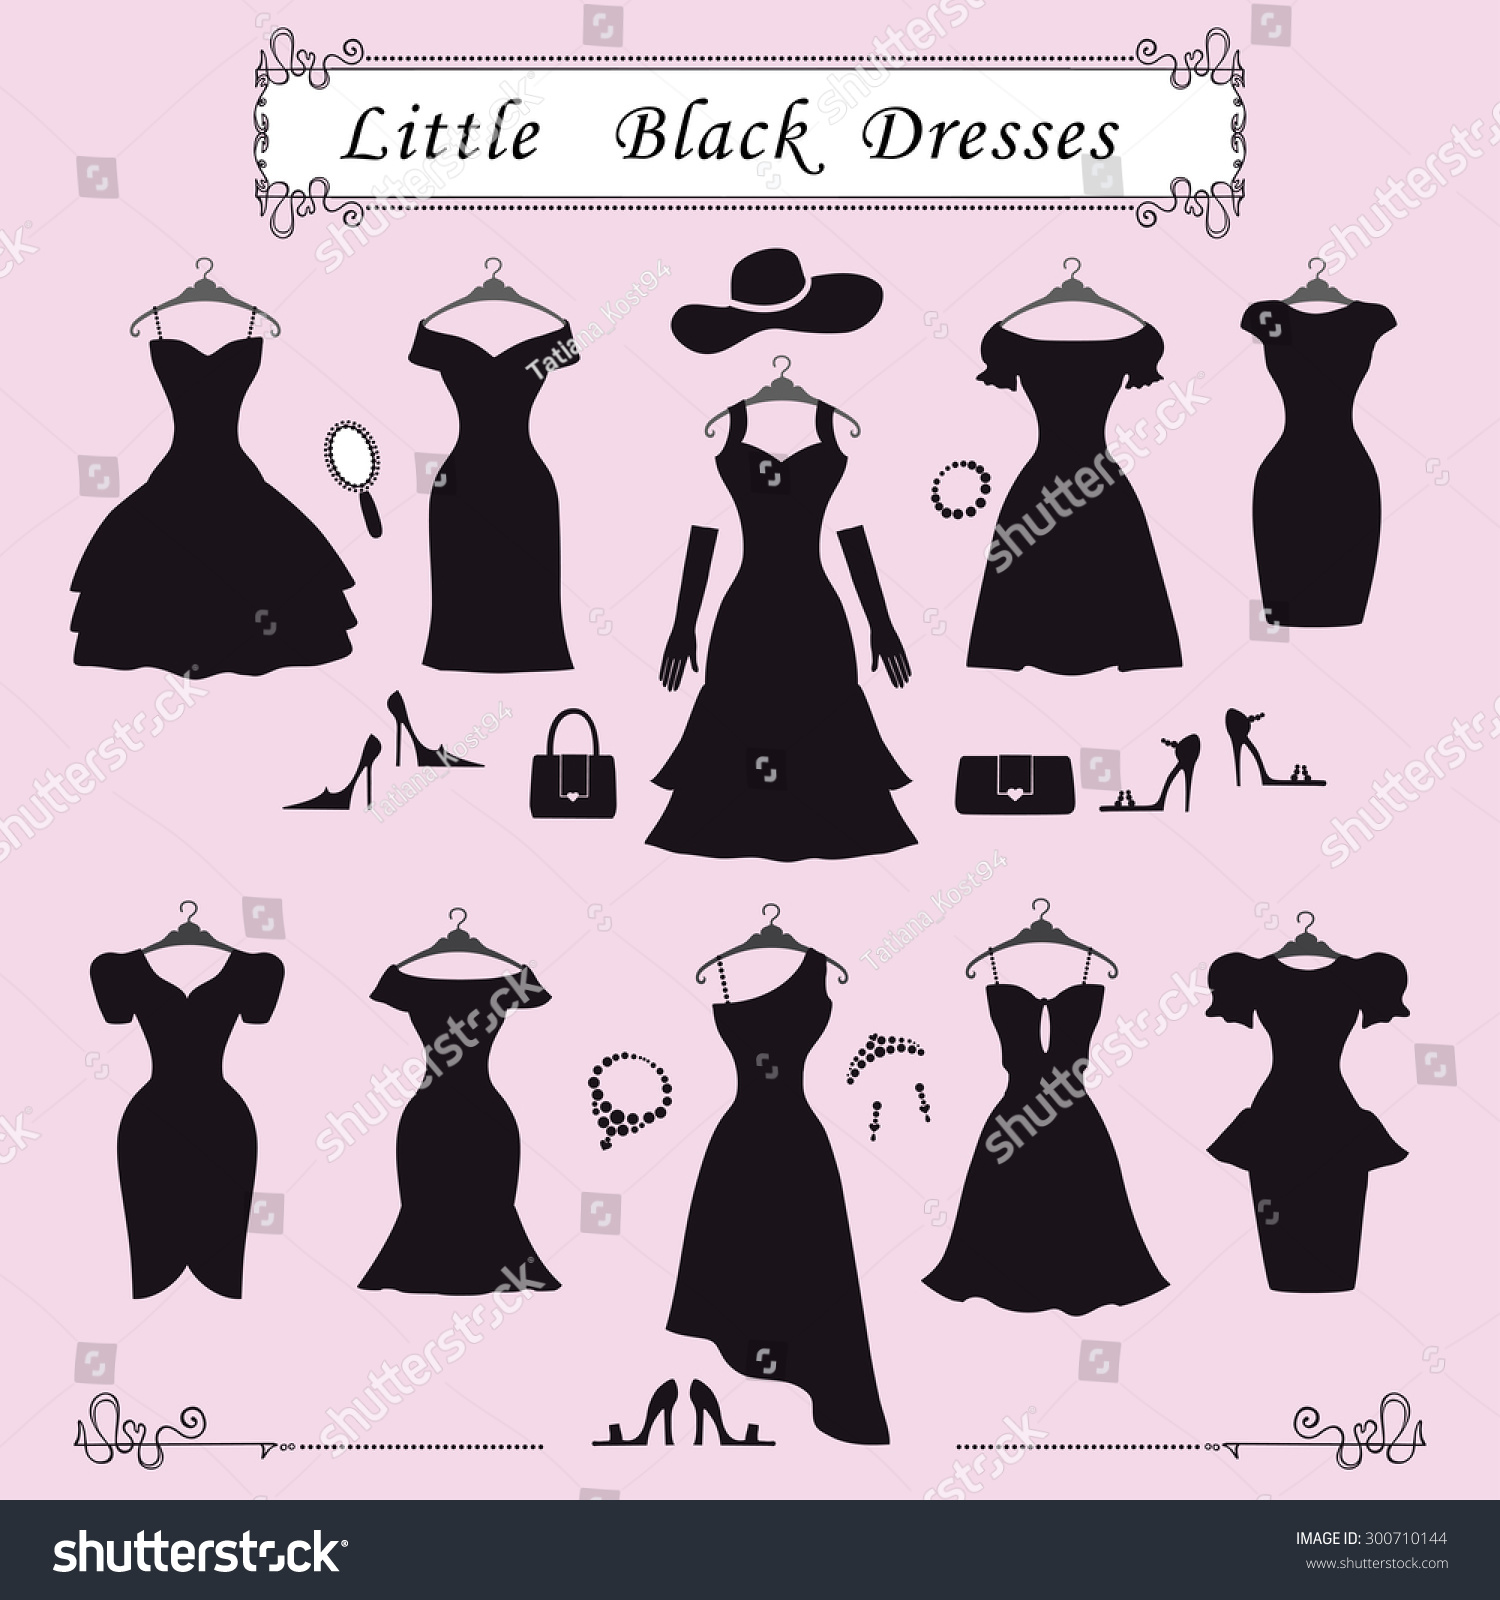 Fashion Dressdifferent Styles Little Black Party Stock Vector Royalty Free 300710144